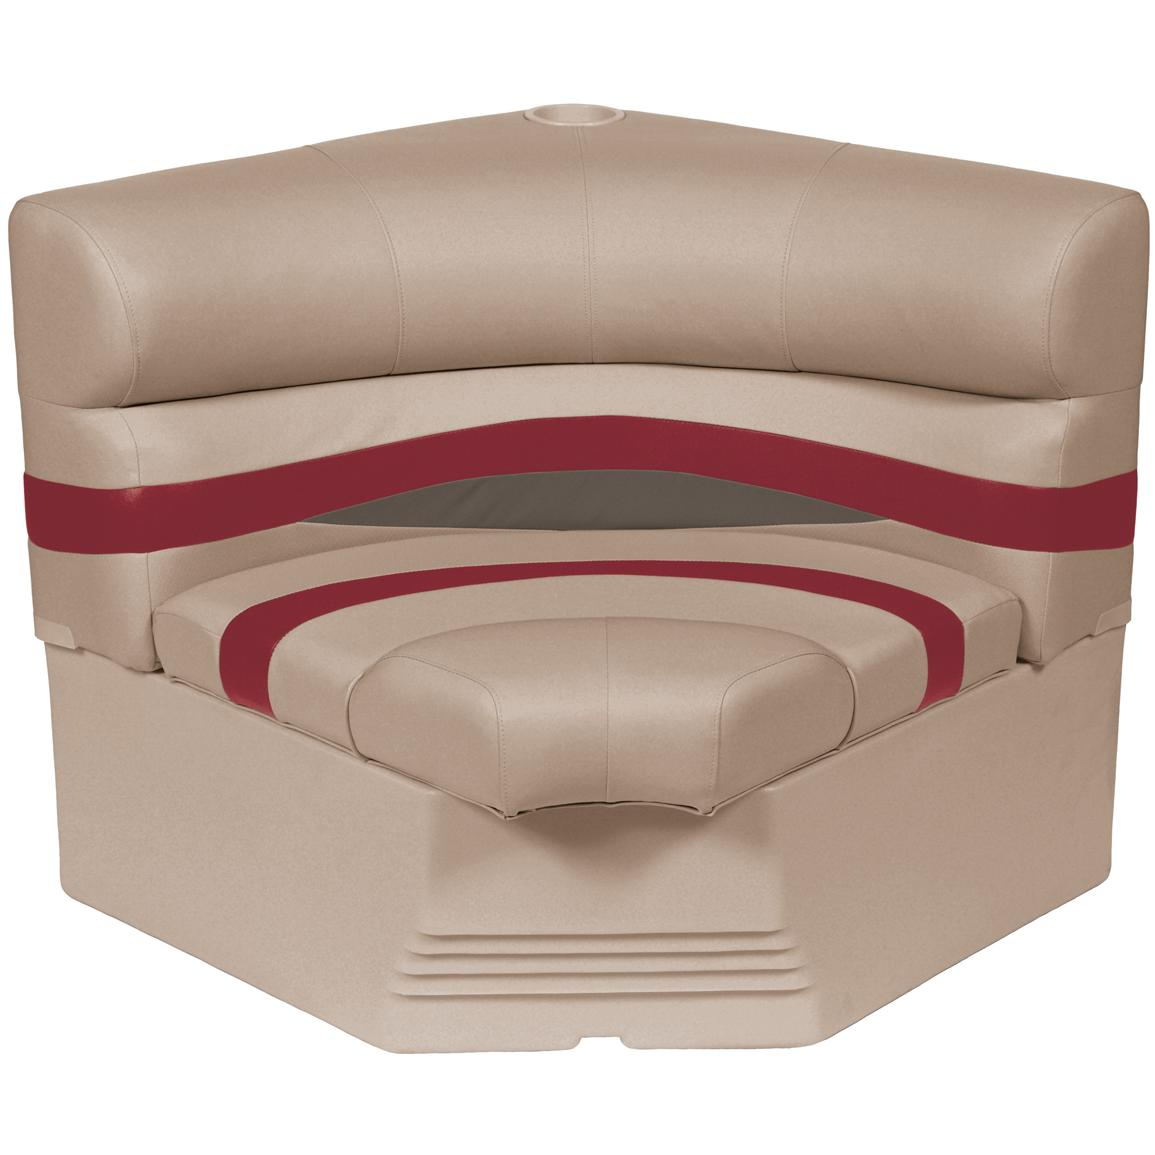 Wise® Premier 1100 Series 32 inch Pontoon Radius Corner Seat, Color E